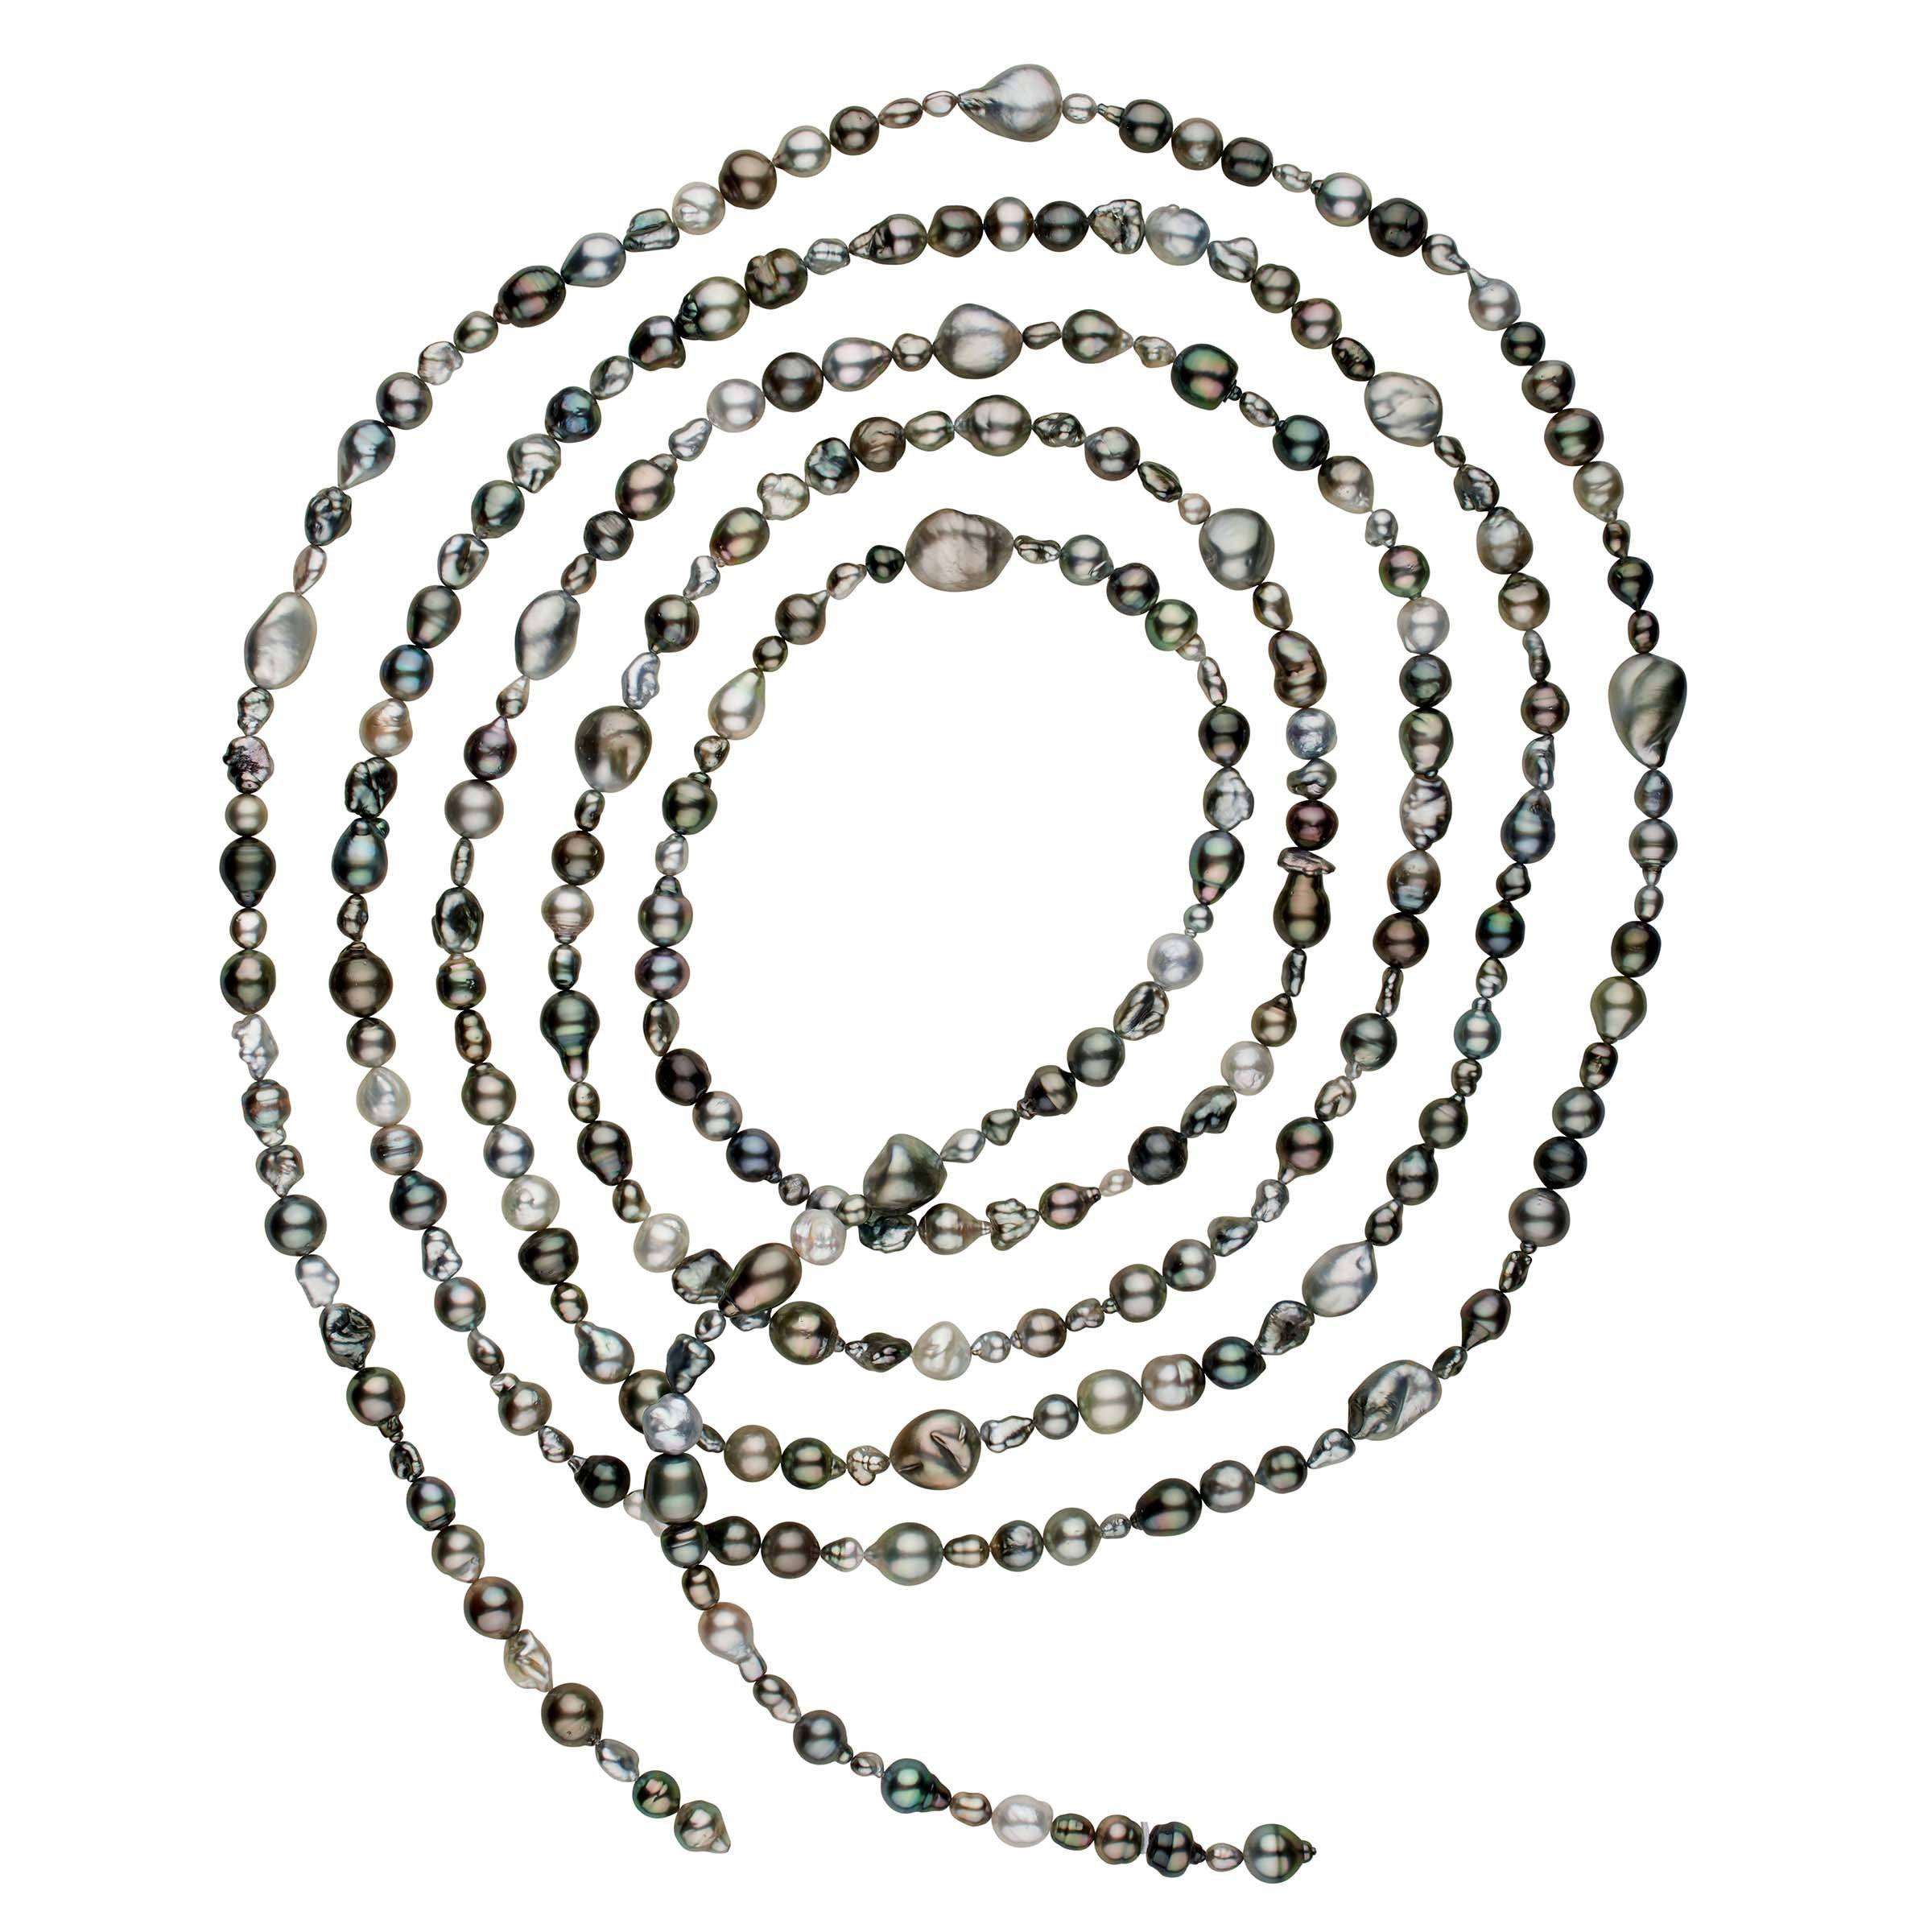 Luxe Edition - Andy Müller Tahitian Baroque Rope - 307 pearls